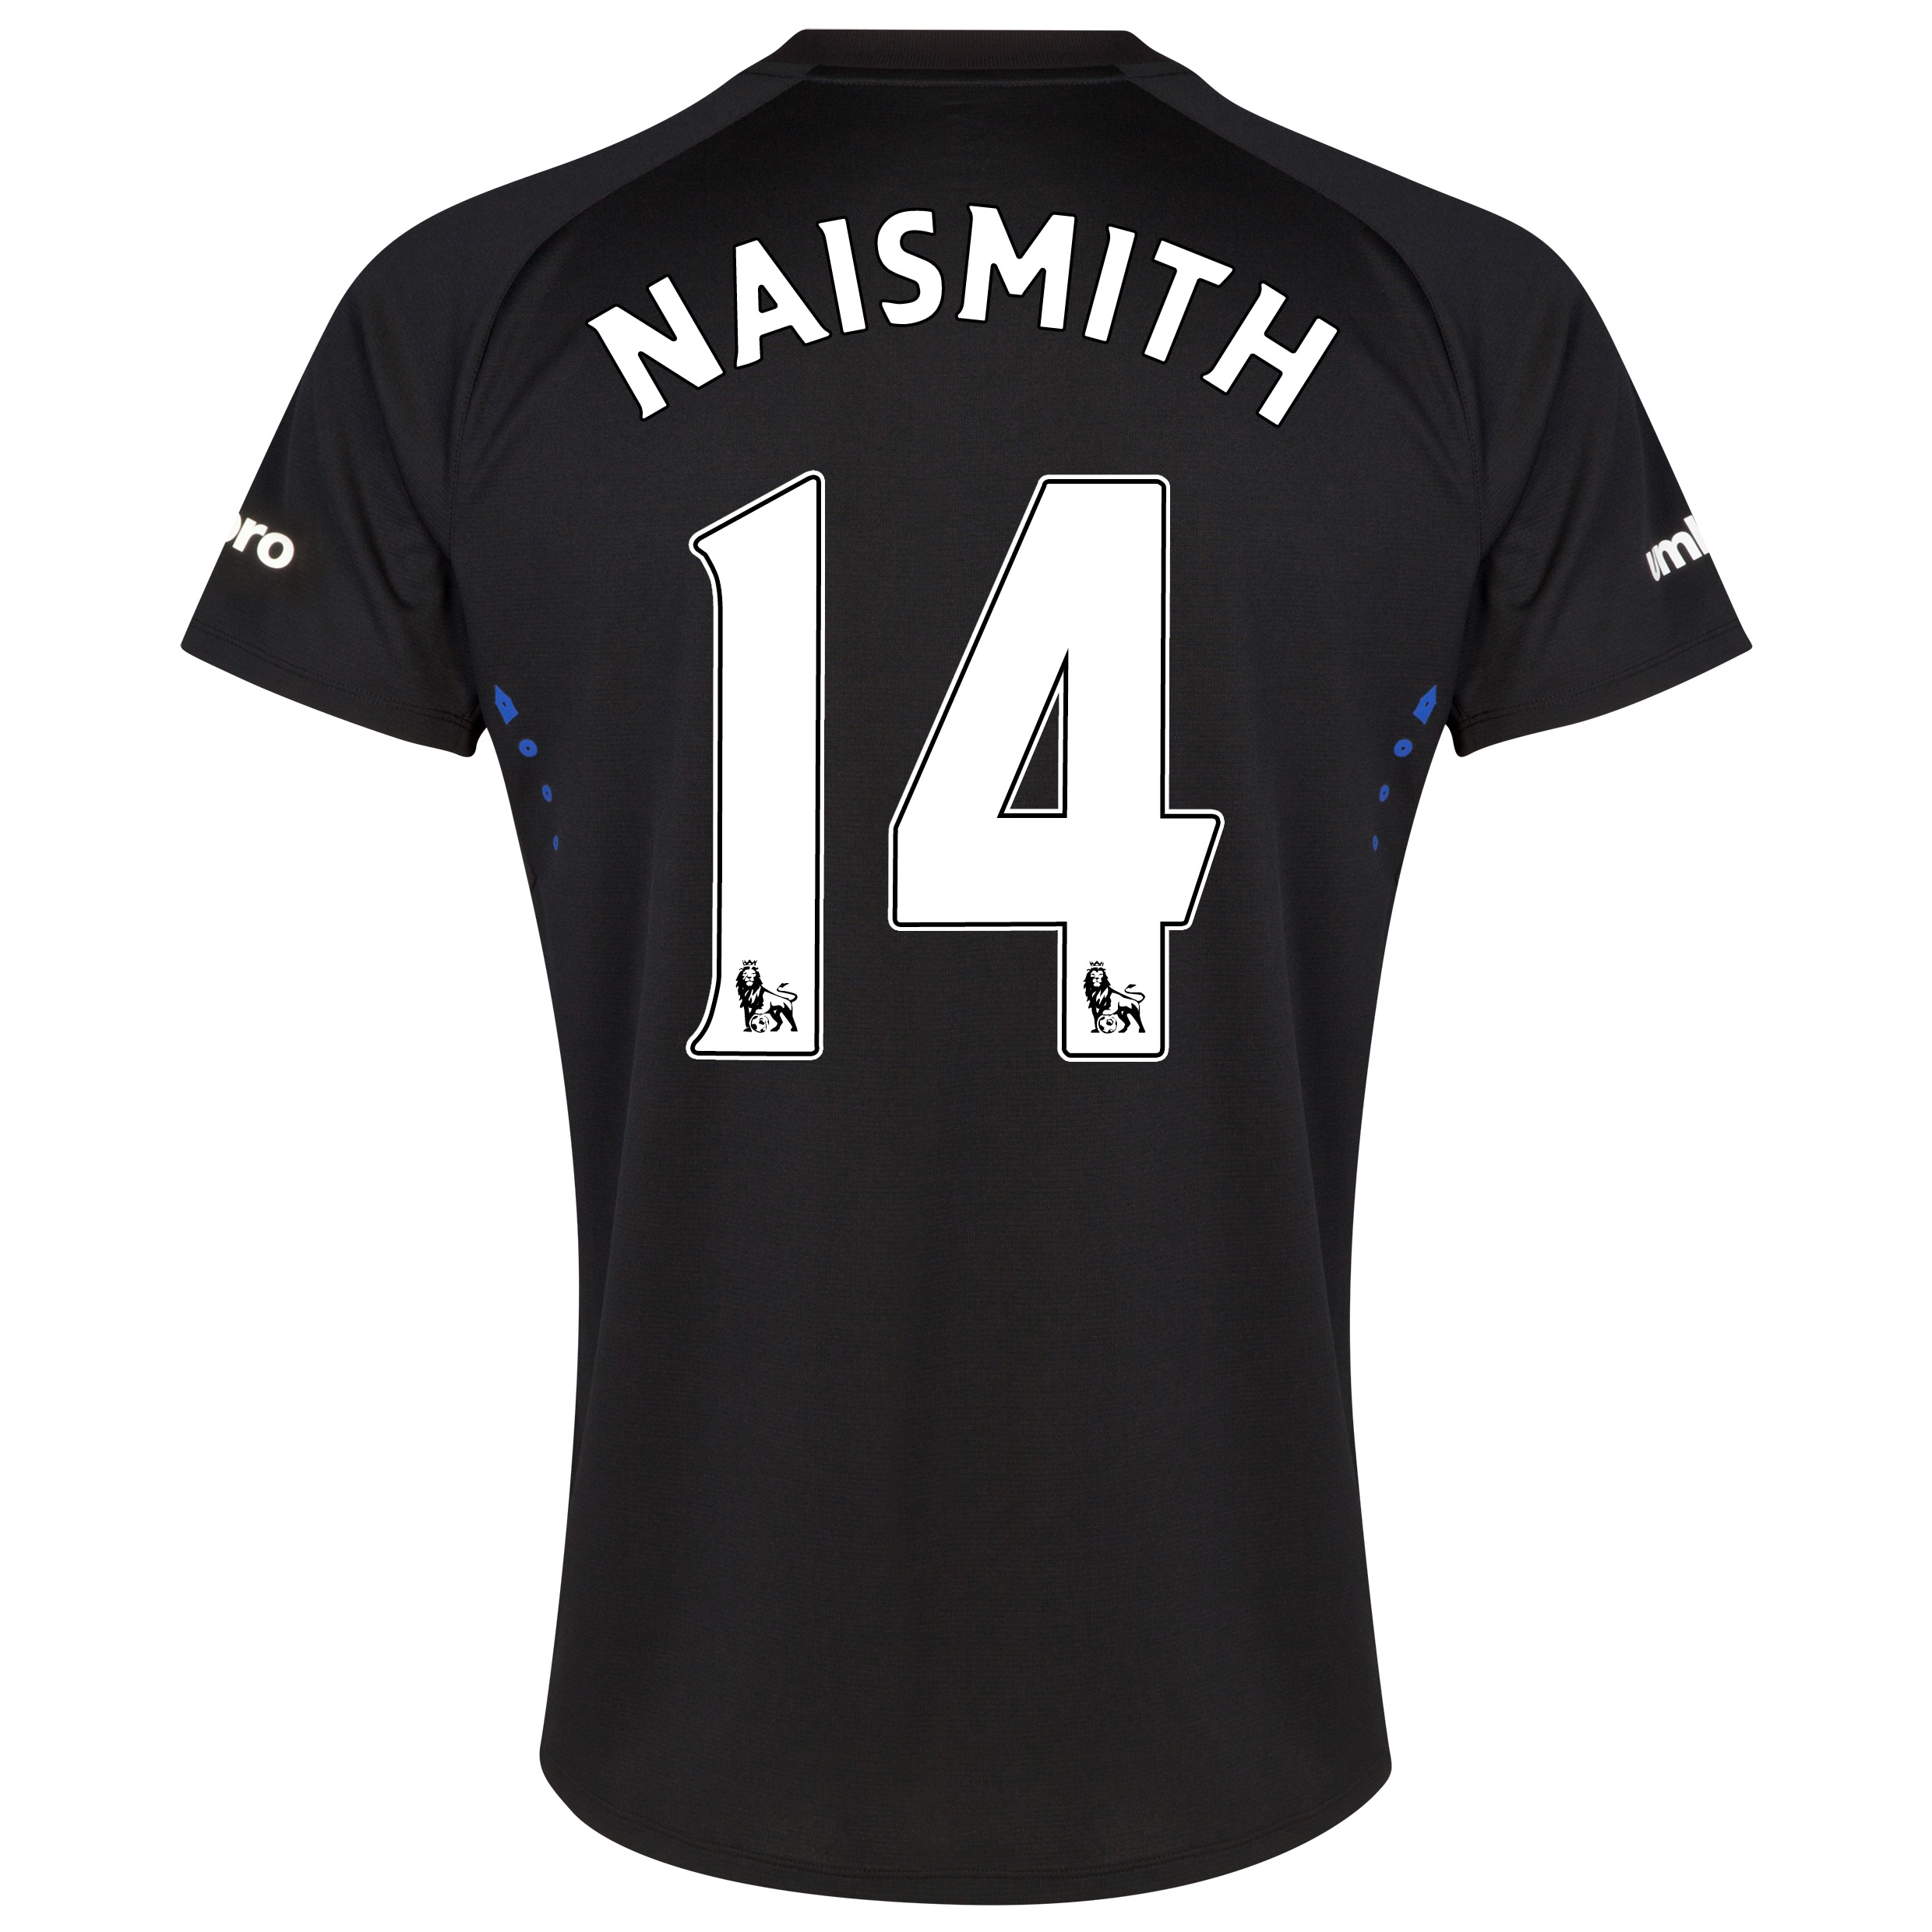 Everton SS Away Shirt 2014/15 with Naismith 14 printing